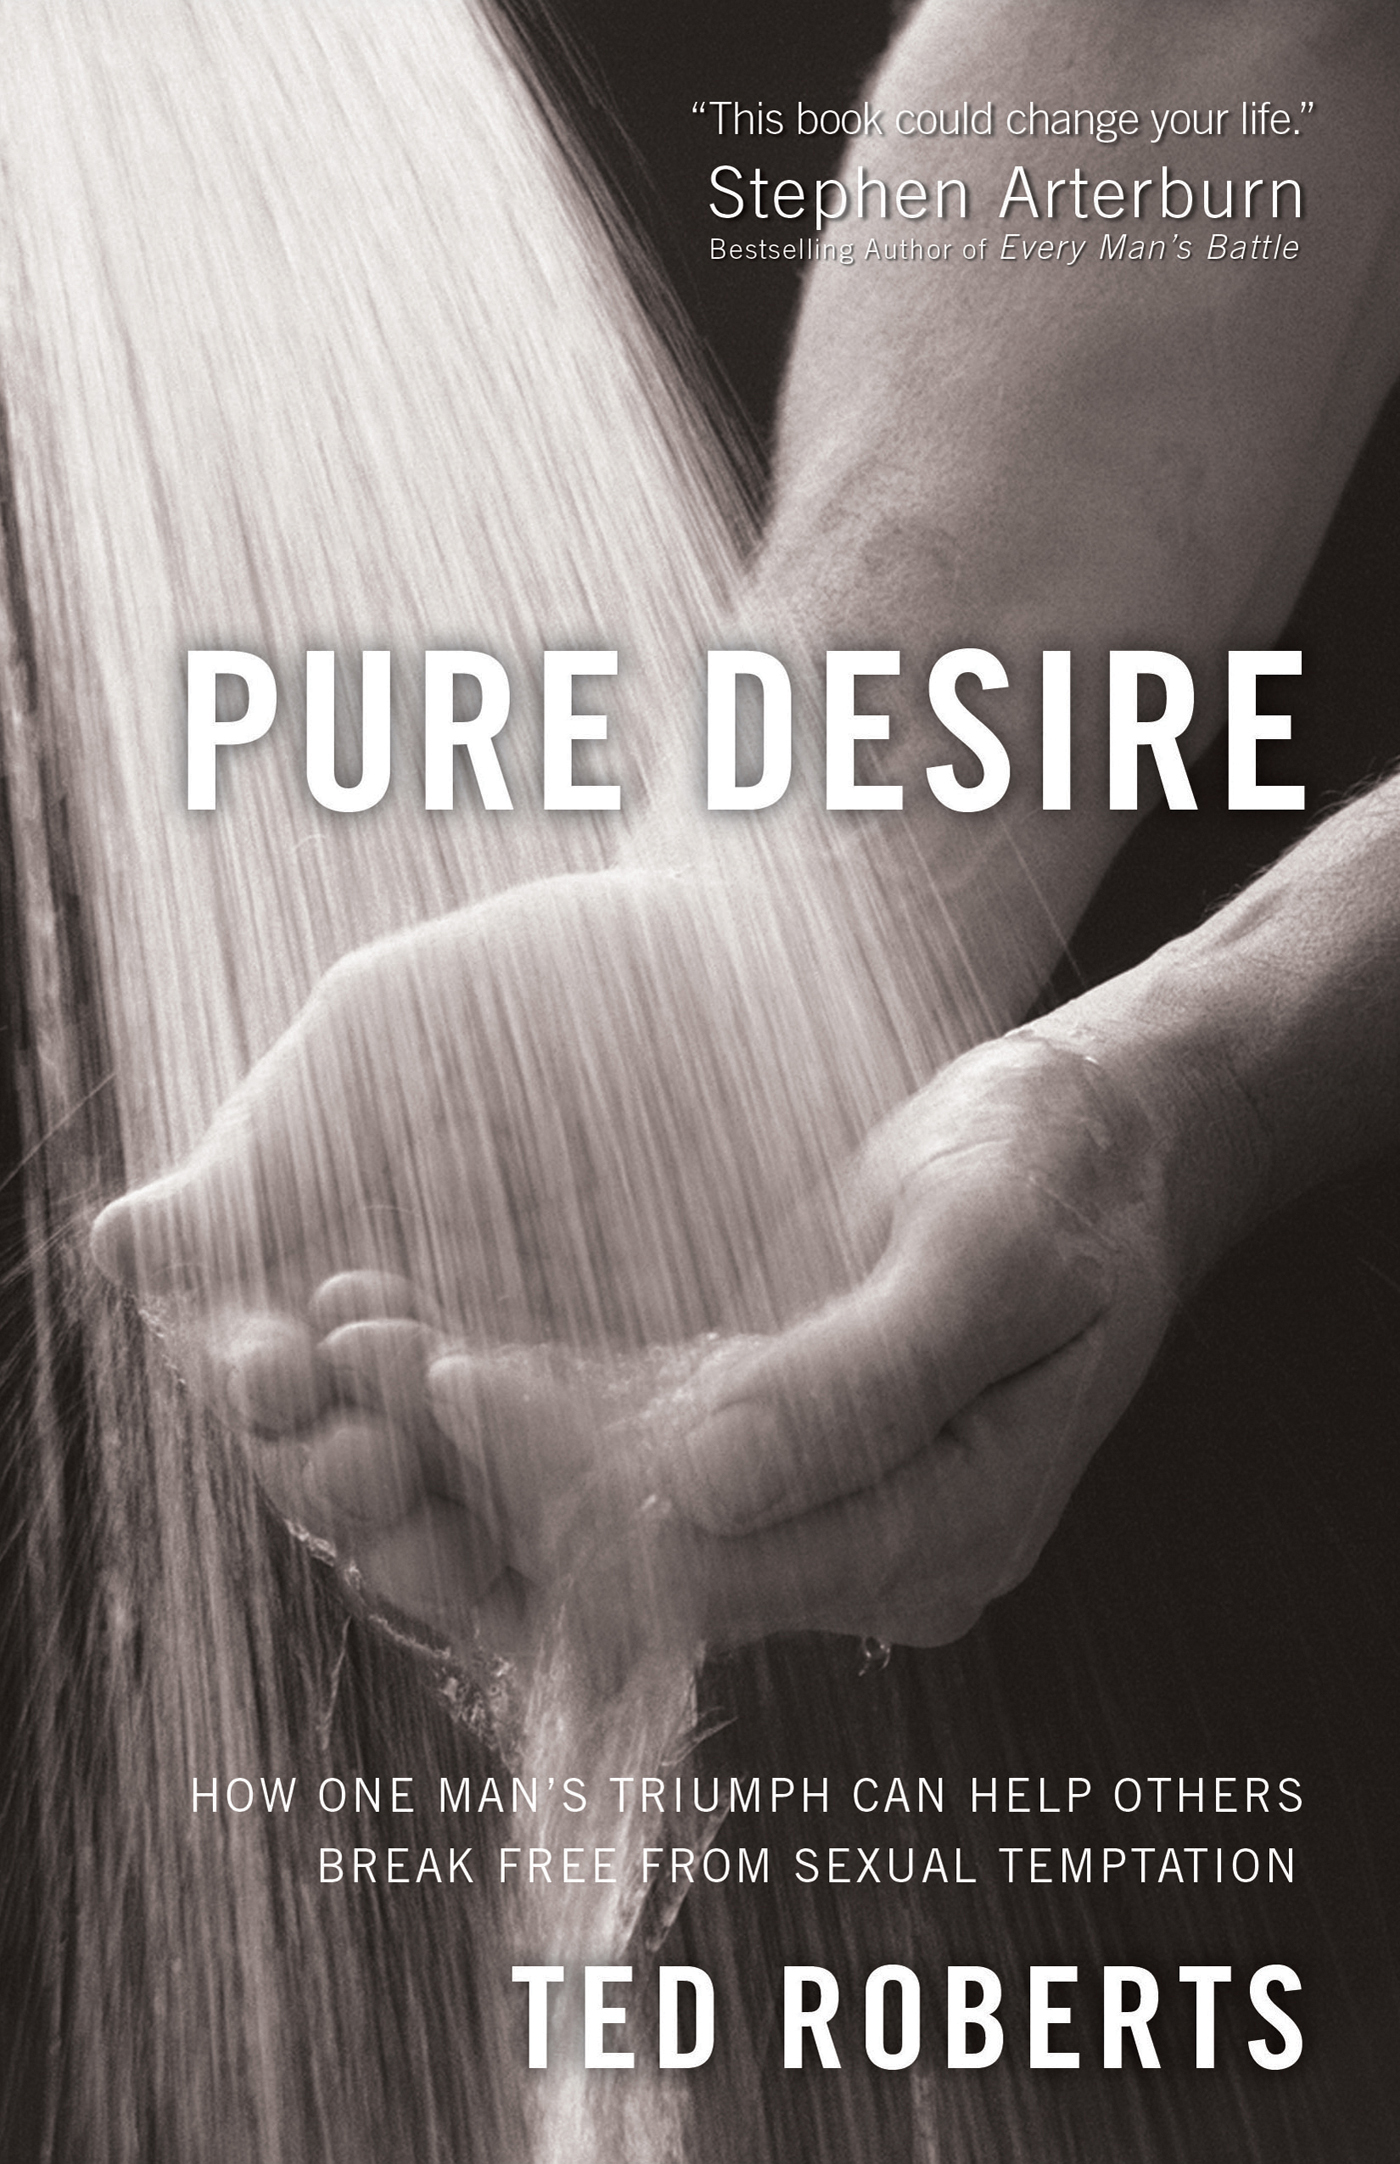 Pure Desire: How One Man's Triumph Can Help Others Break Free From Sexual Temptation By: Dr. Ted Roberts